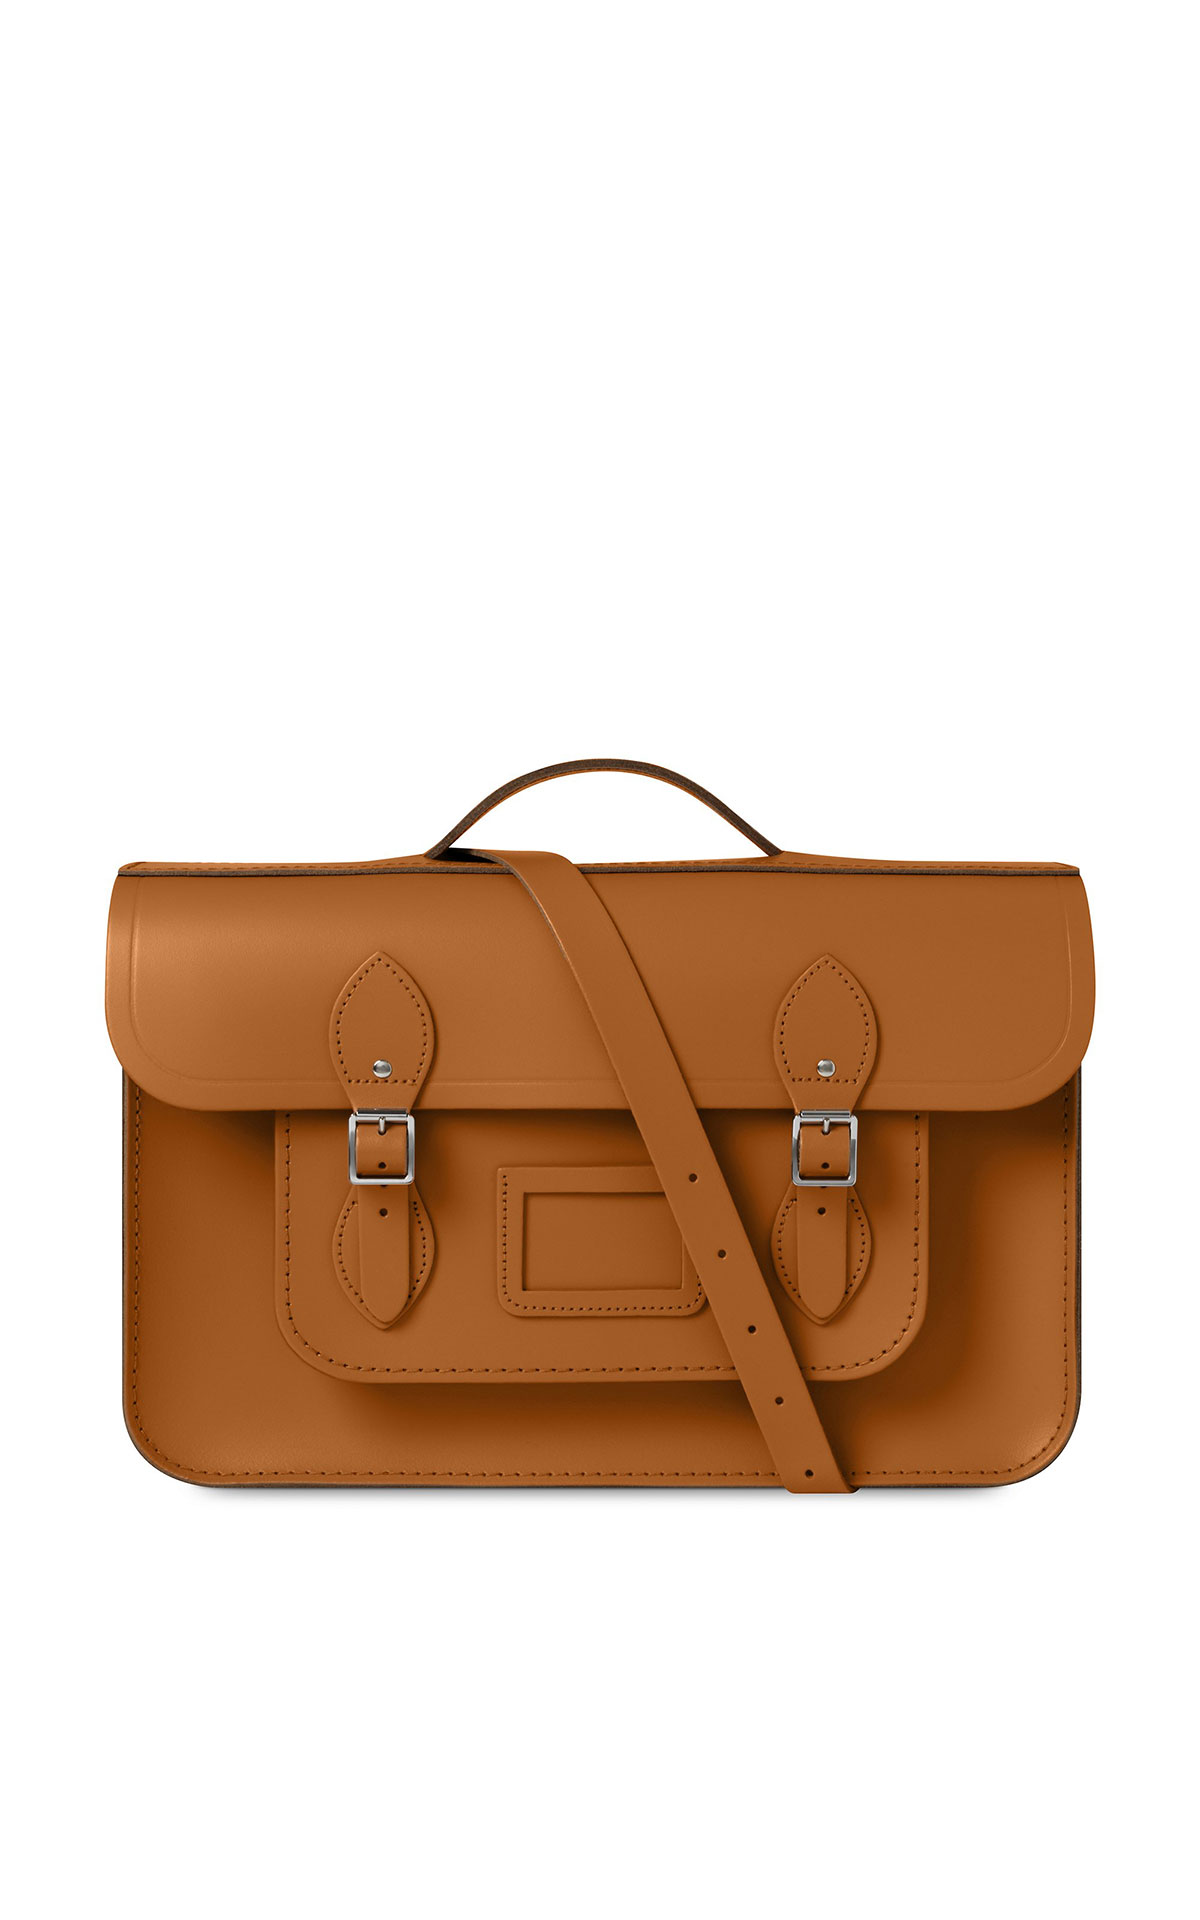 The Cambridge Satchel Company Classic batchel canyon from Bicester Village